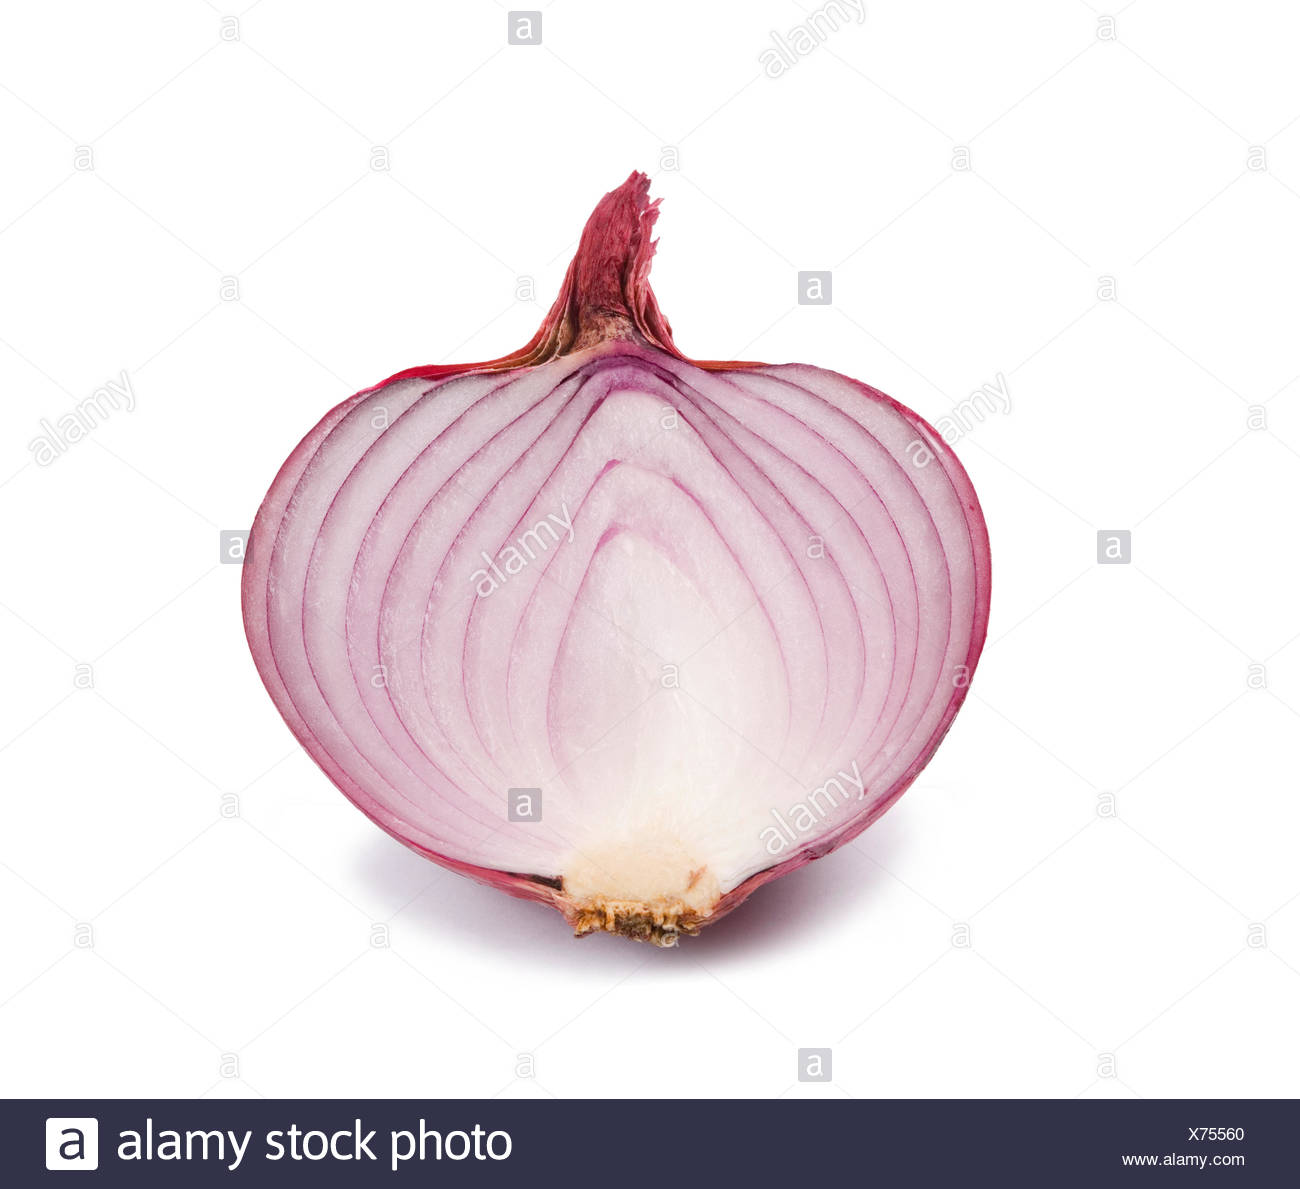 Detail of purple onion, vegetables - Stock Image